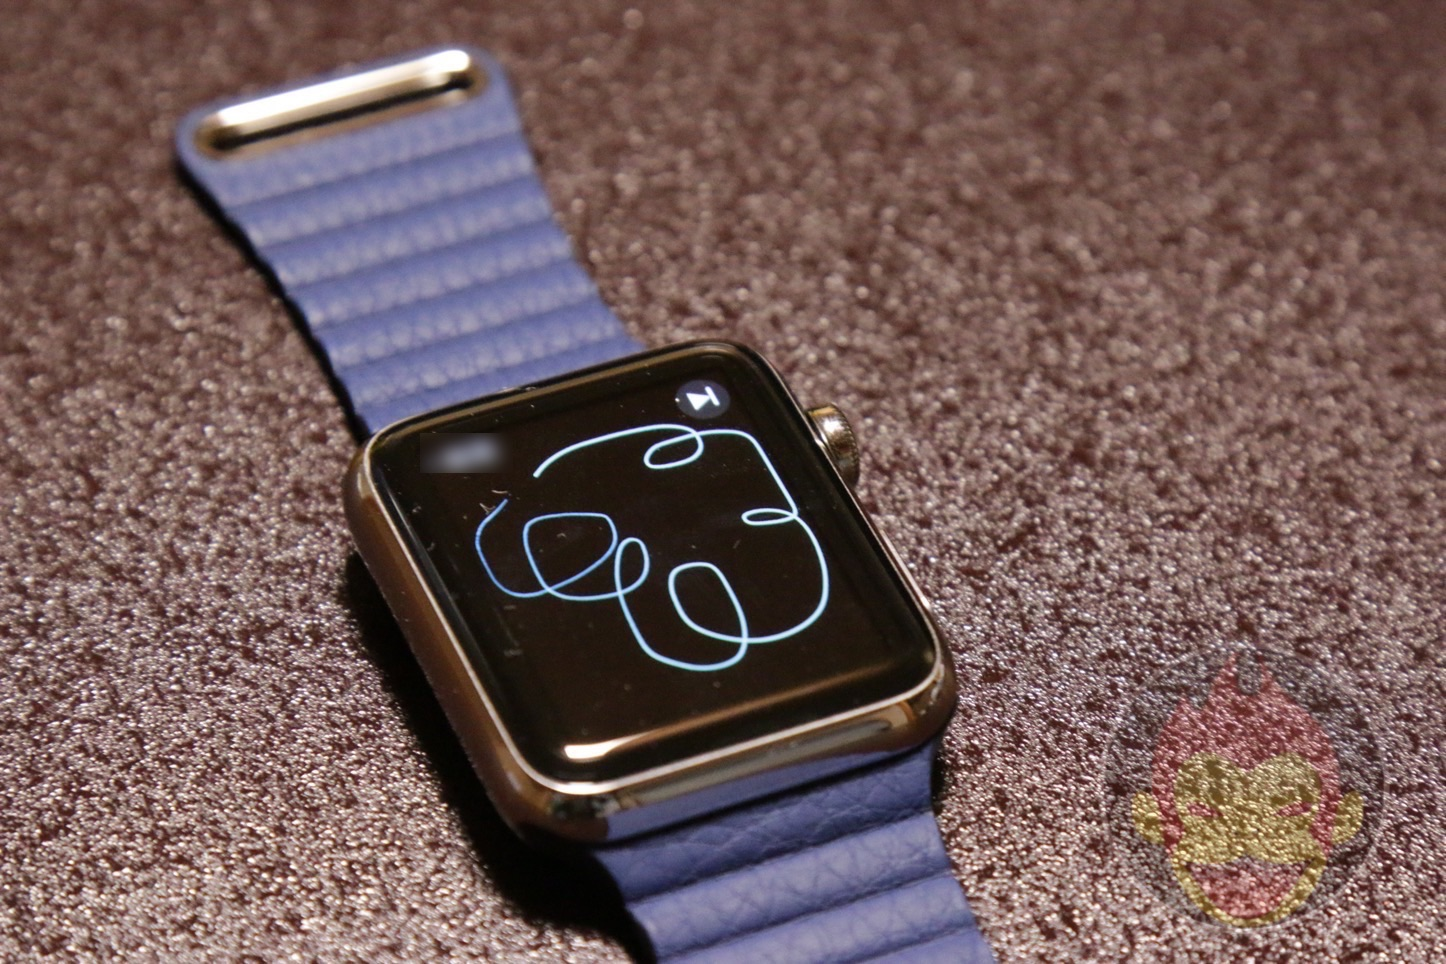 Apple Watch Without Wi-Fi